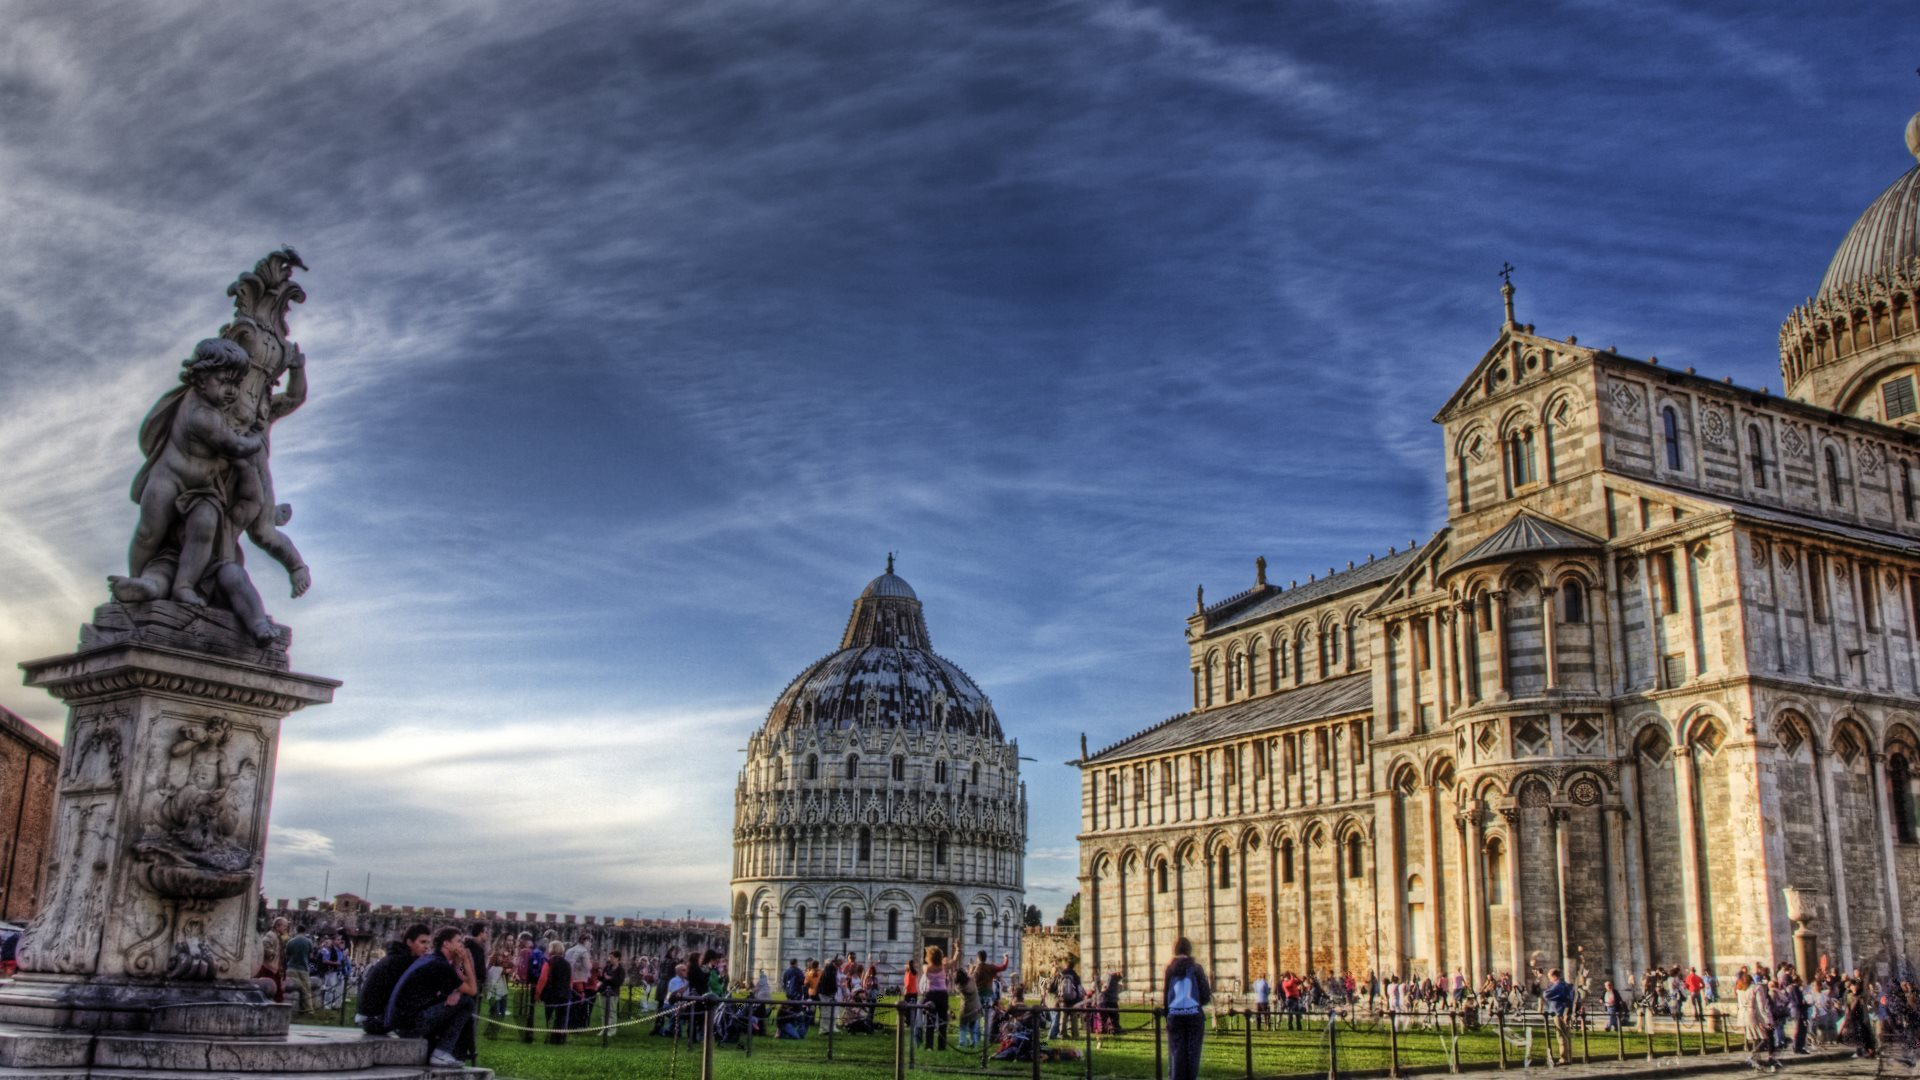 Download Pisa Tower Wallpaper 183 HD Wallpapers [1920x1080] 70 1920x1080